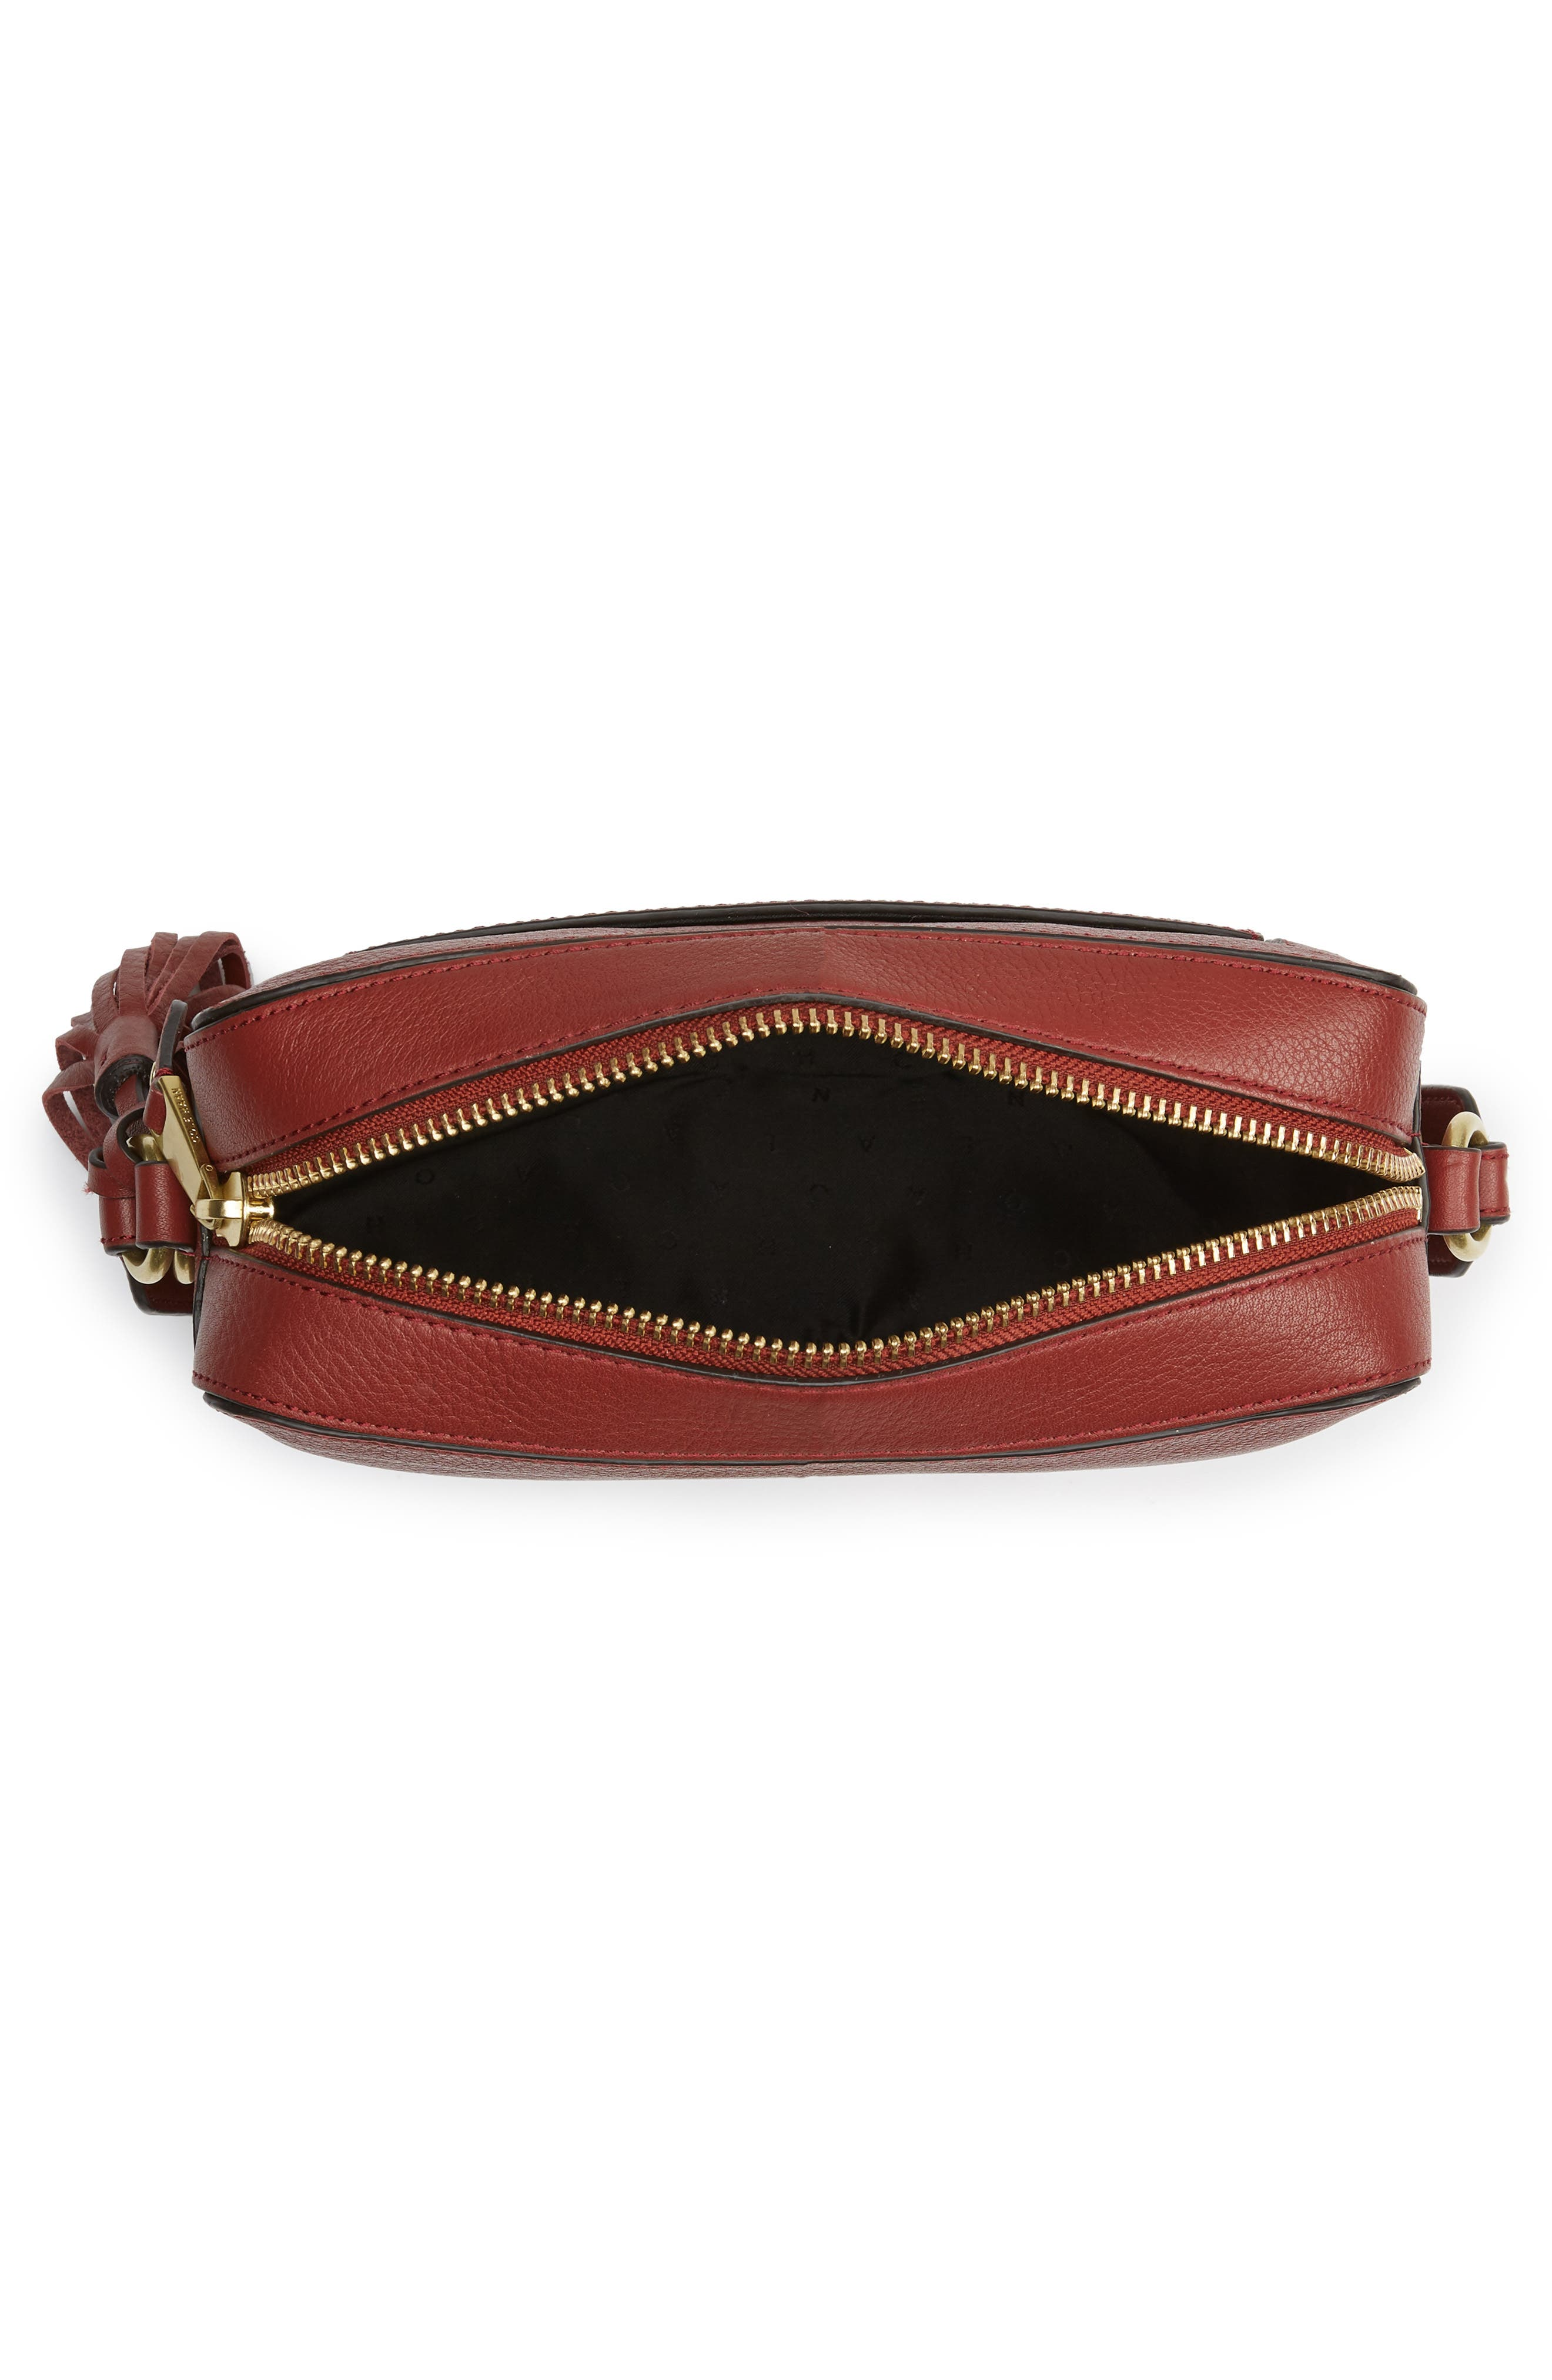 Cassidy RFID Pebbled Leather Camera Bag,                             Alternate thumbnail 14, color,